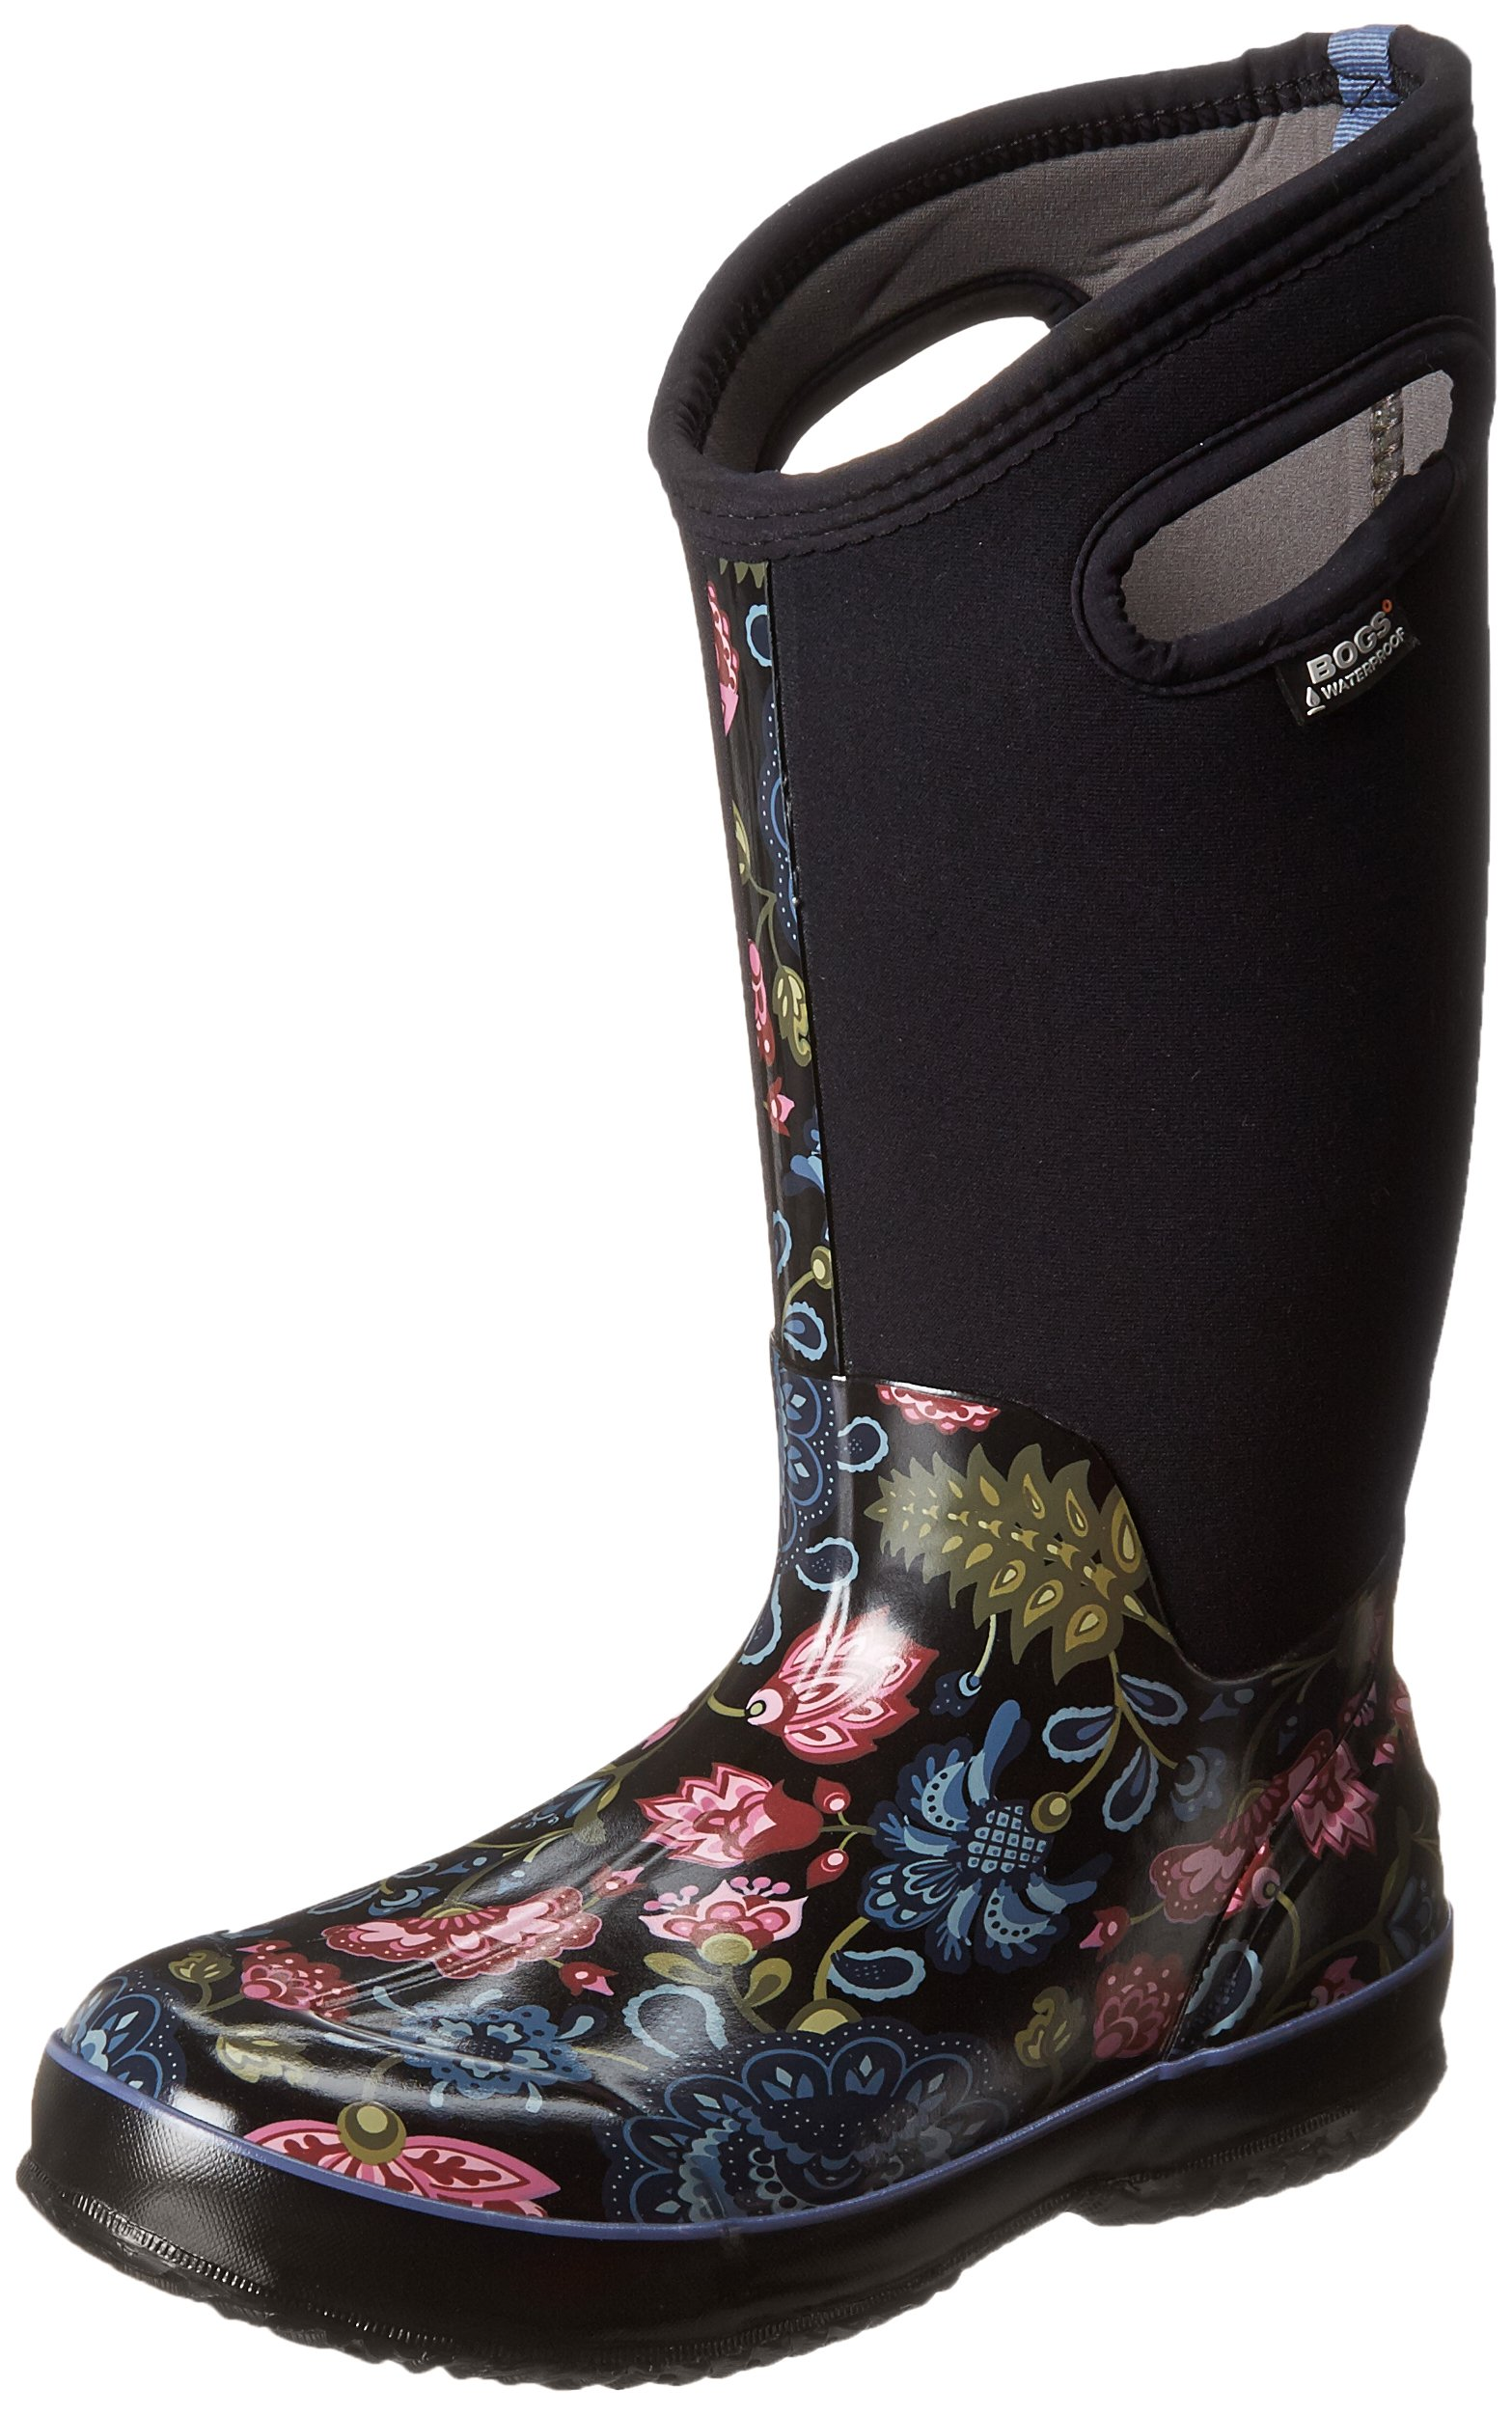 Bogs Women's Classic Tall Winter Blooms Waterproof Insulated Boot, Black Multi, 6 M US